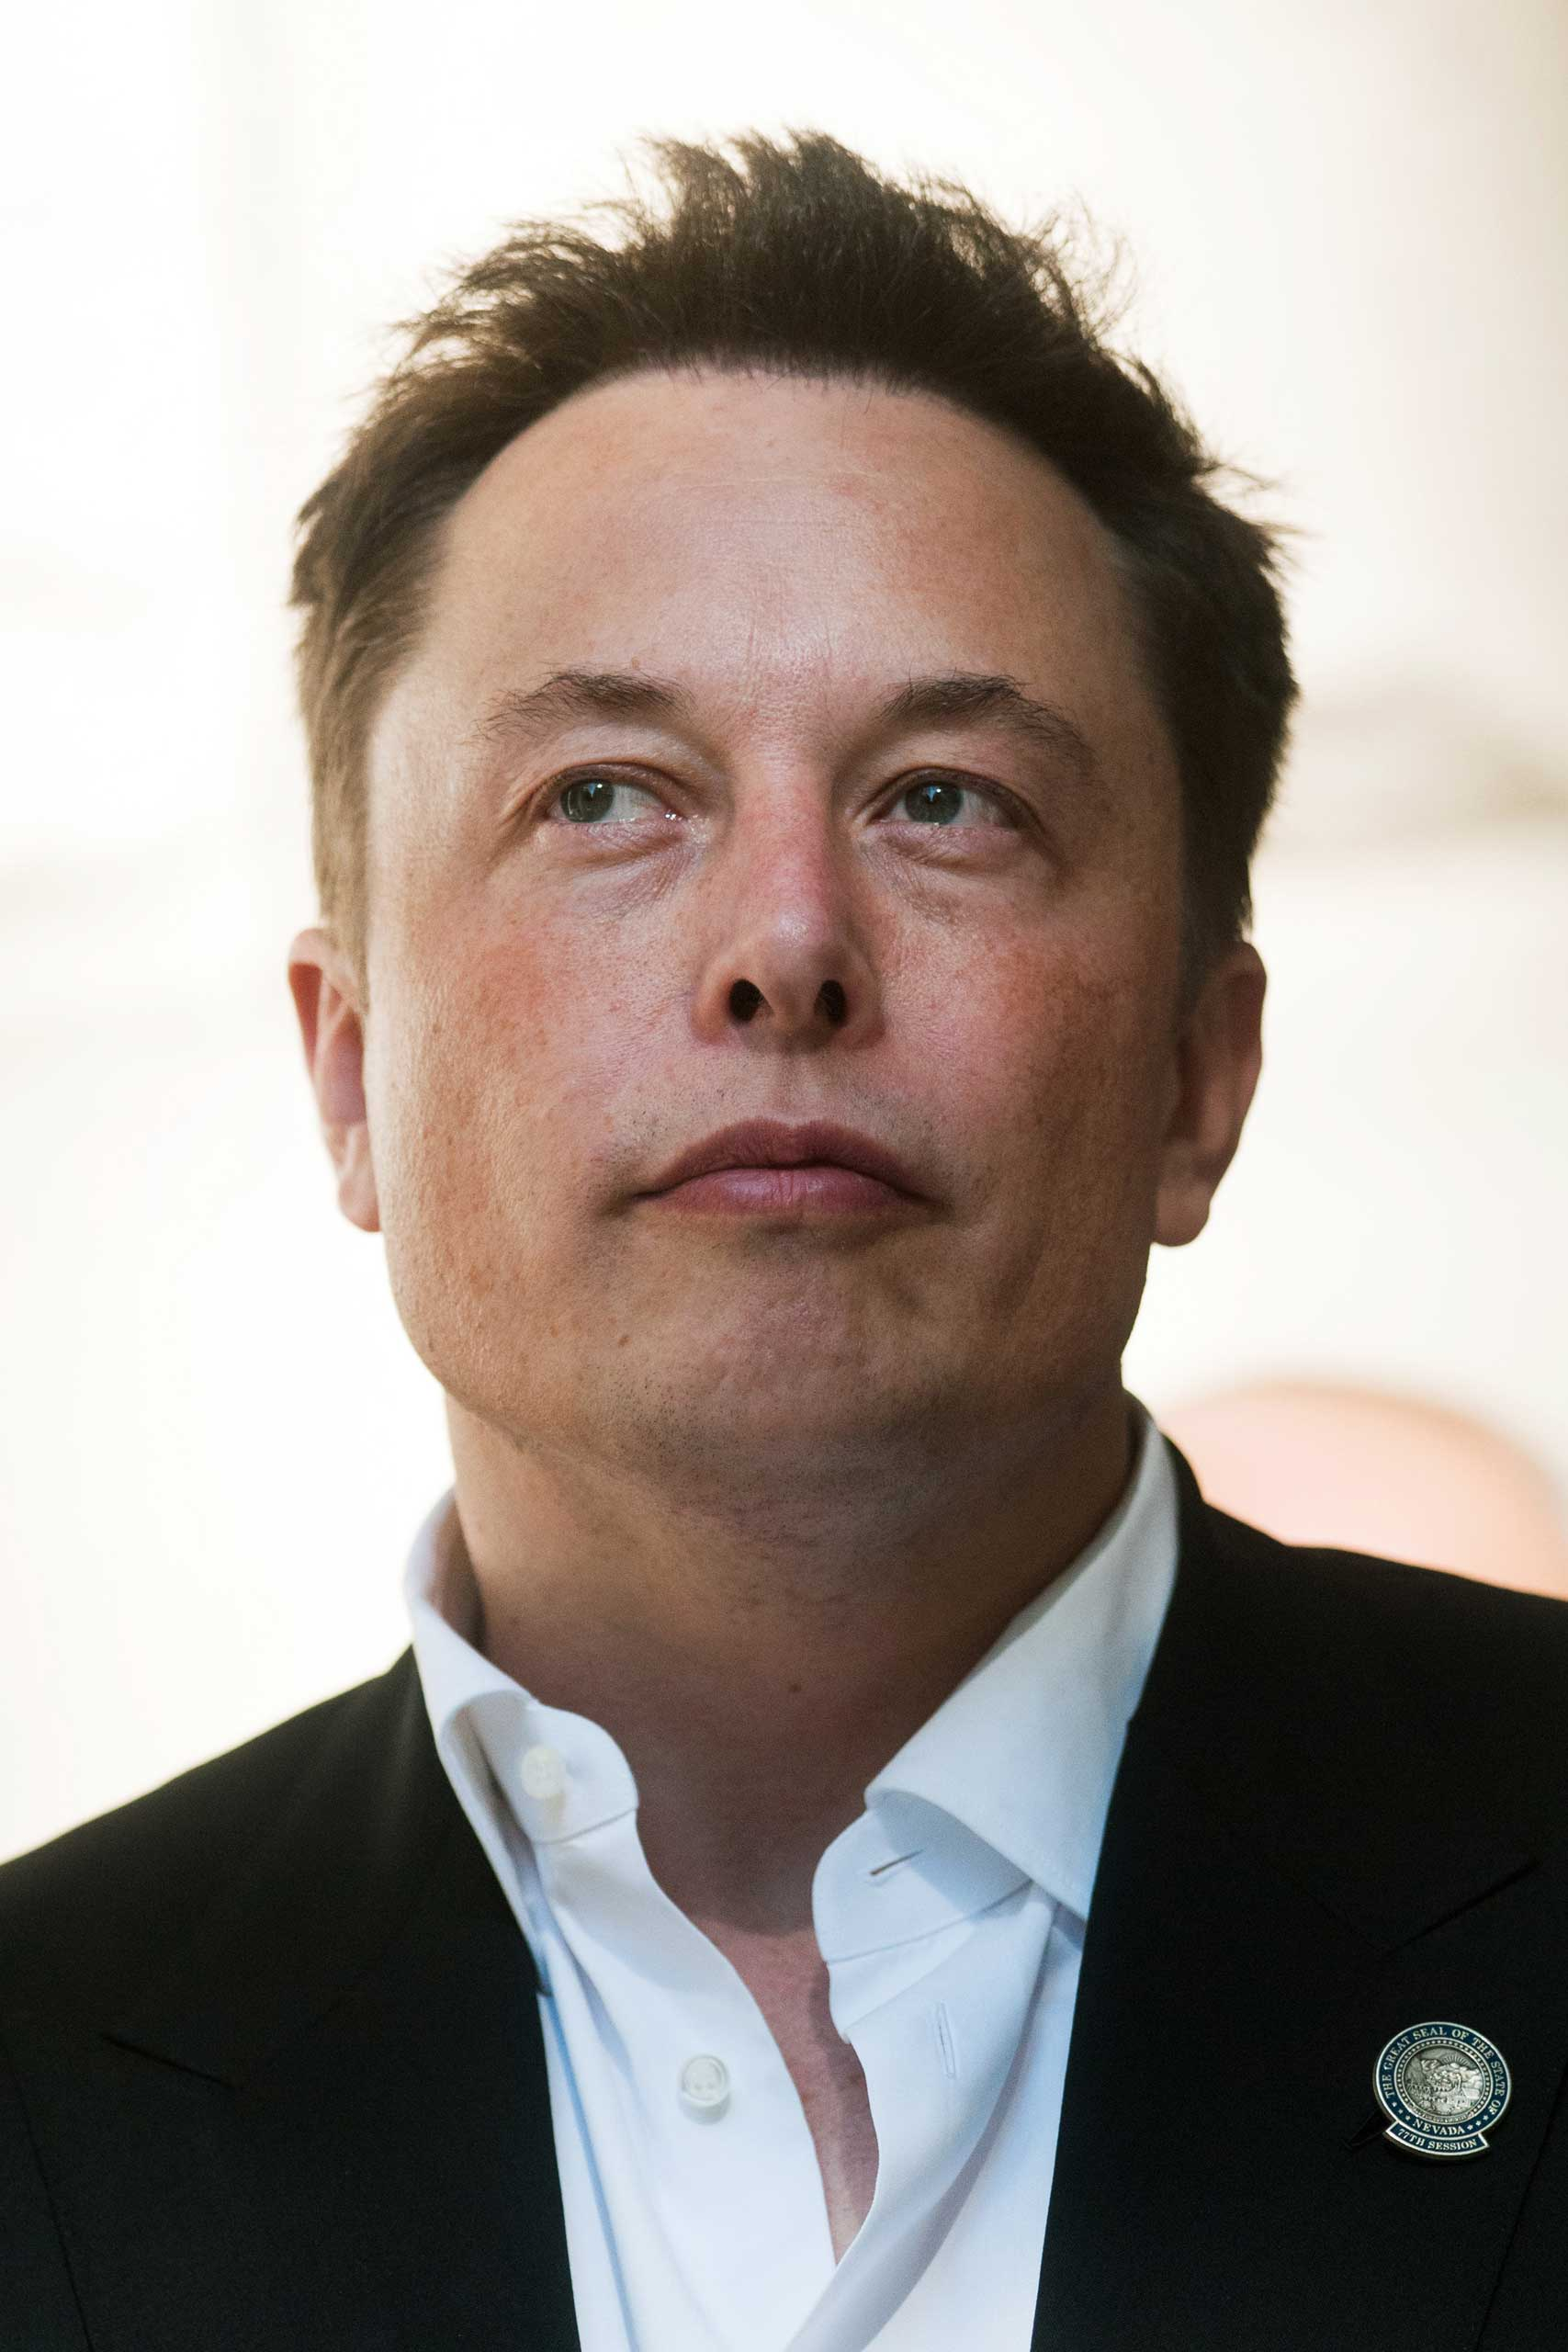 Elon Musk, co-founder and chief executive officer of Tesla Motors Inc., attends a news conference at the Nevada State Capitol building in Carson City, Nevada, U.S., on Thursday, Sept. 4, 2014.